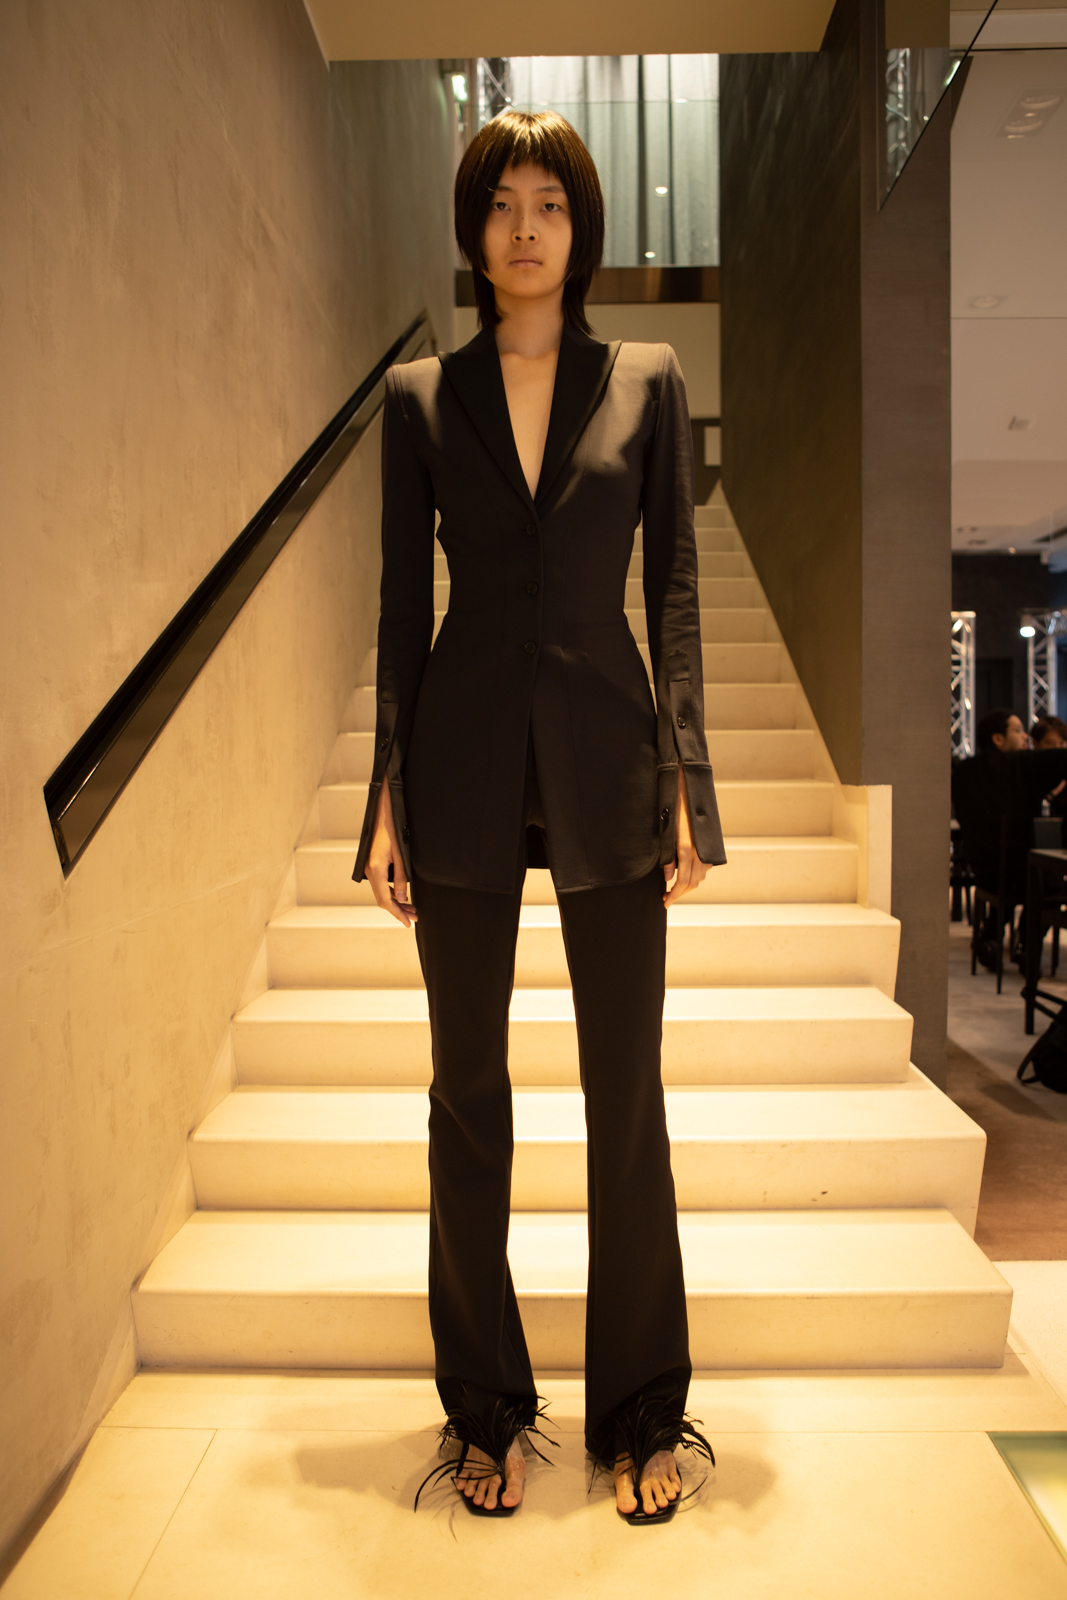 Alexander Wang Slim Fit Blazer in Black Slim Flared Pant in Black FW 20